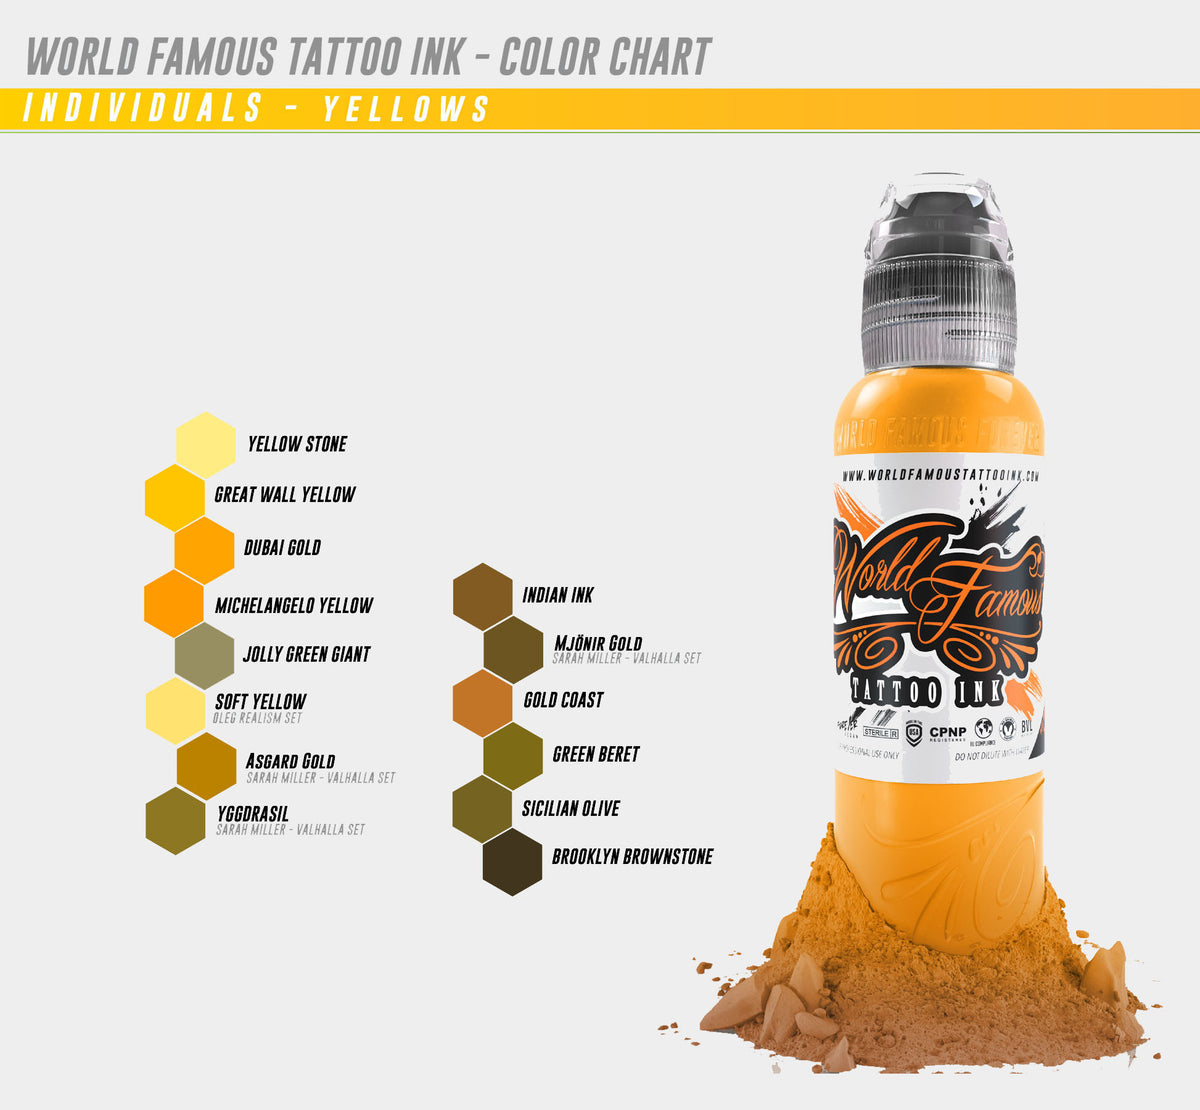 WF individual bottles - Yellows & Browns